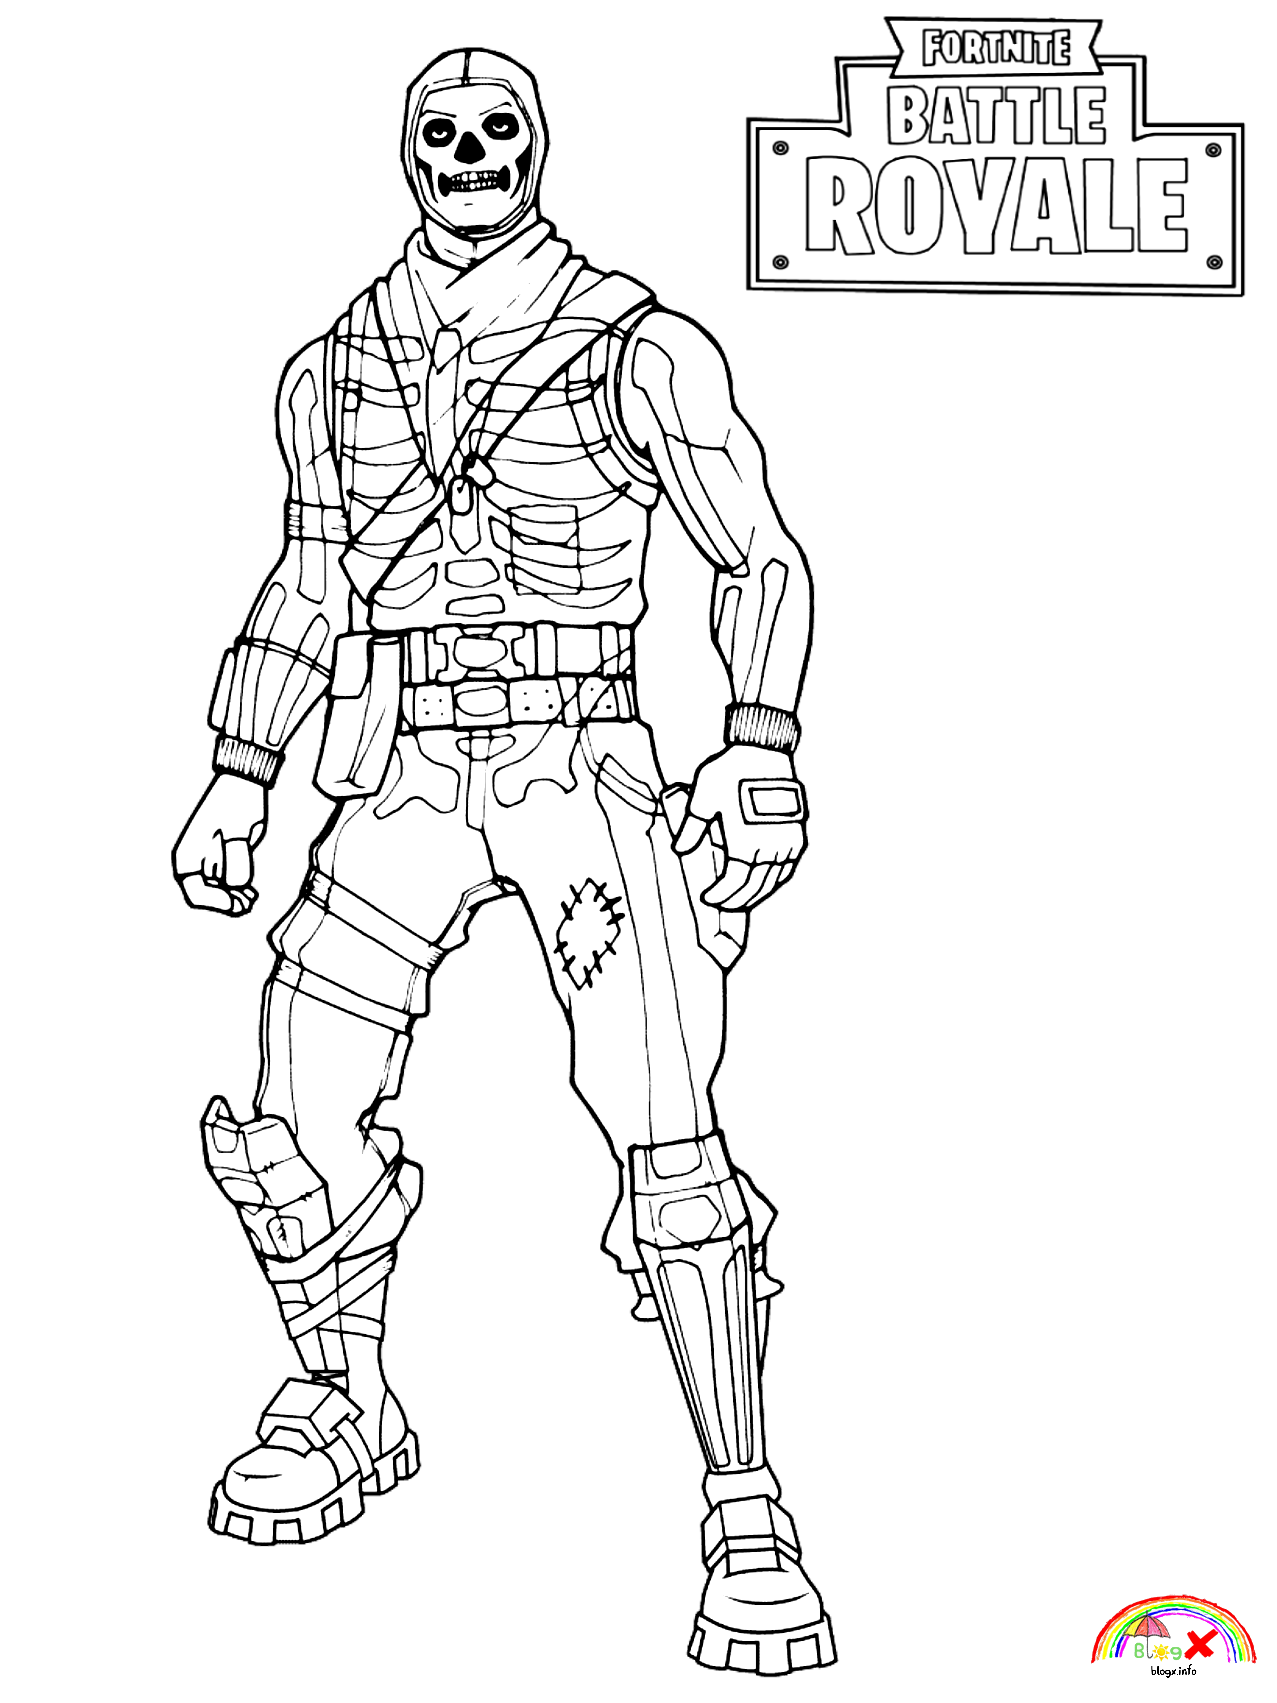 Skull Trooper Fortnite Battle Royale Coloring Pages Coloring Pages Allow Kids To Accompany Their Coloring Pages Coloring Pages For Girls Easy Coloring Pages